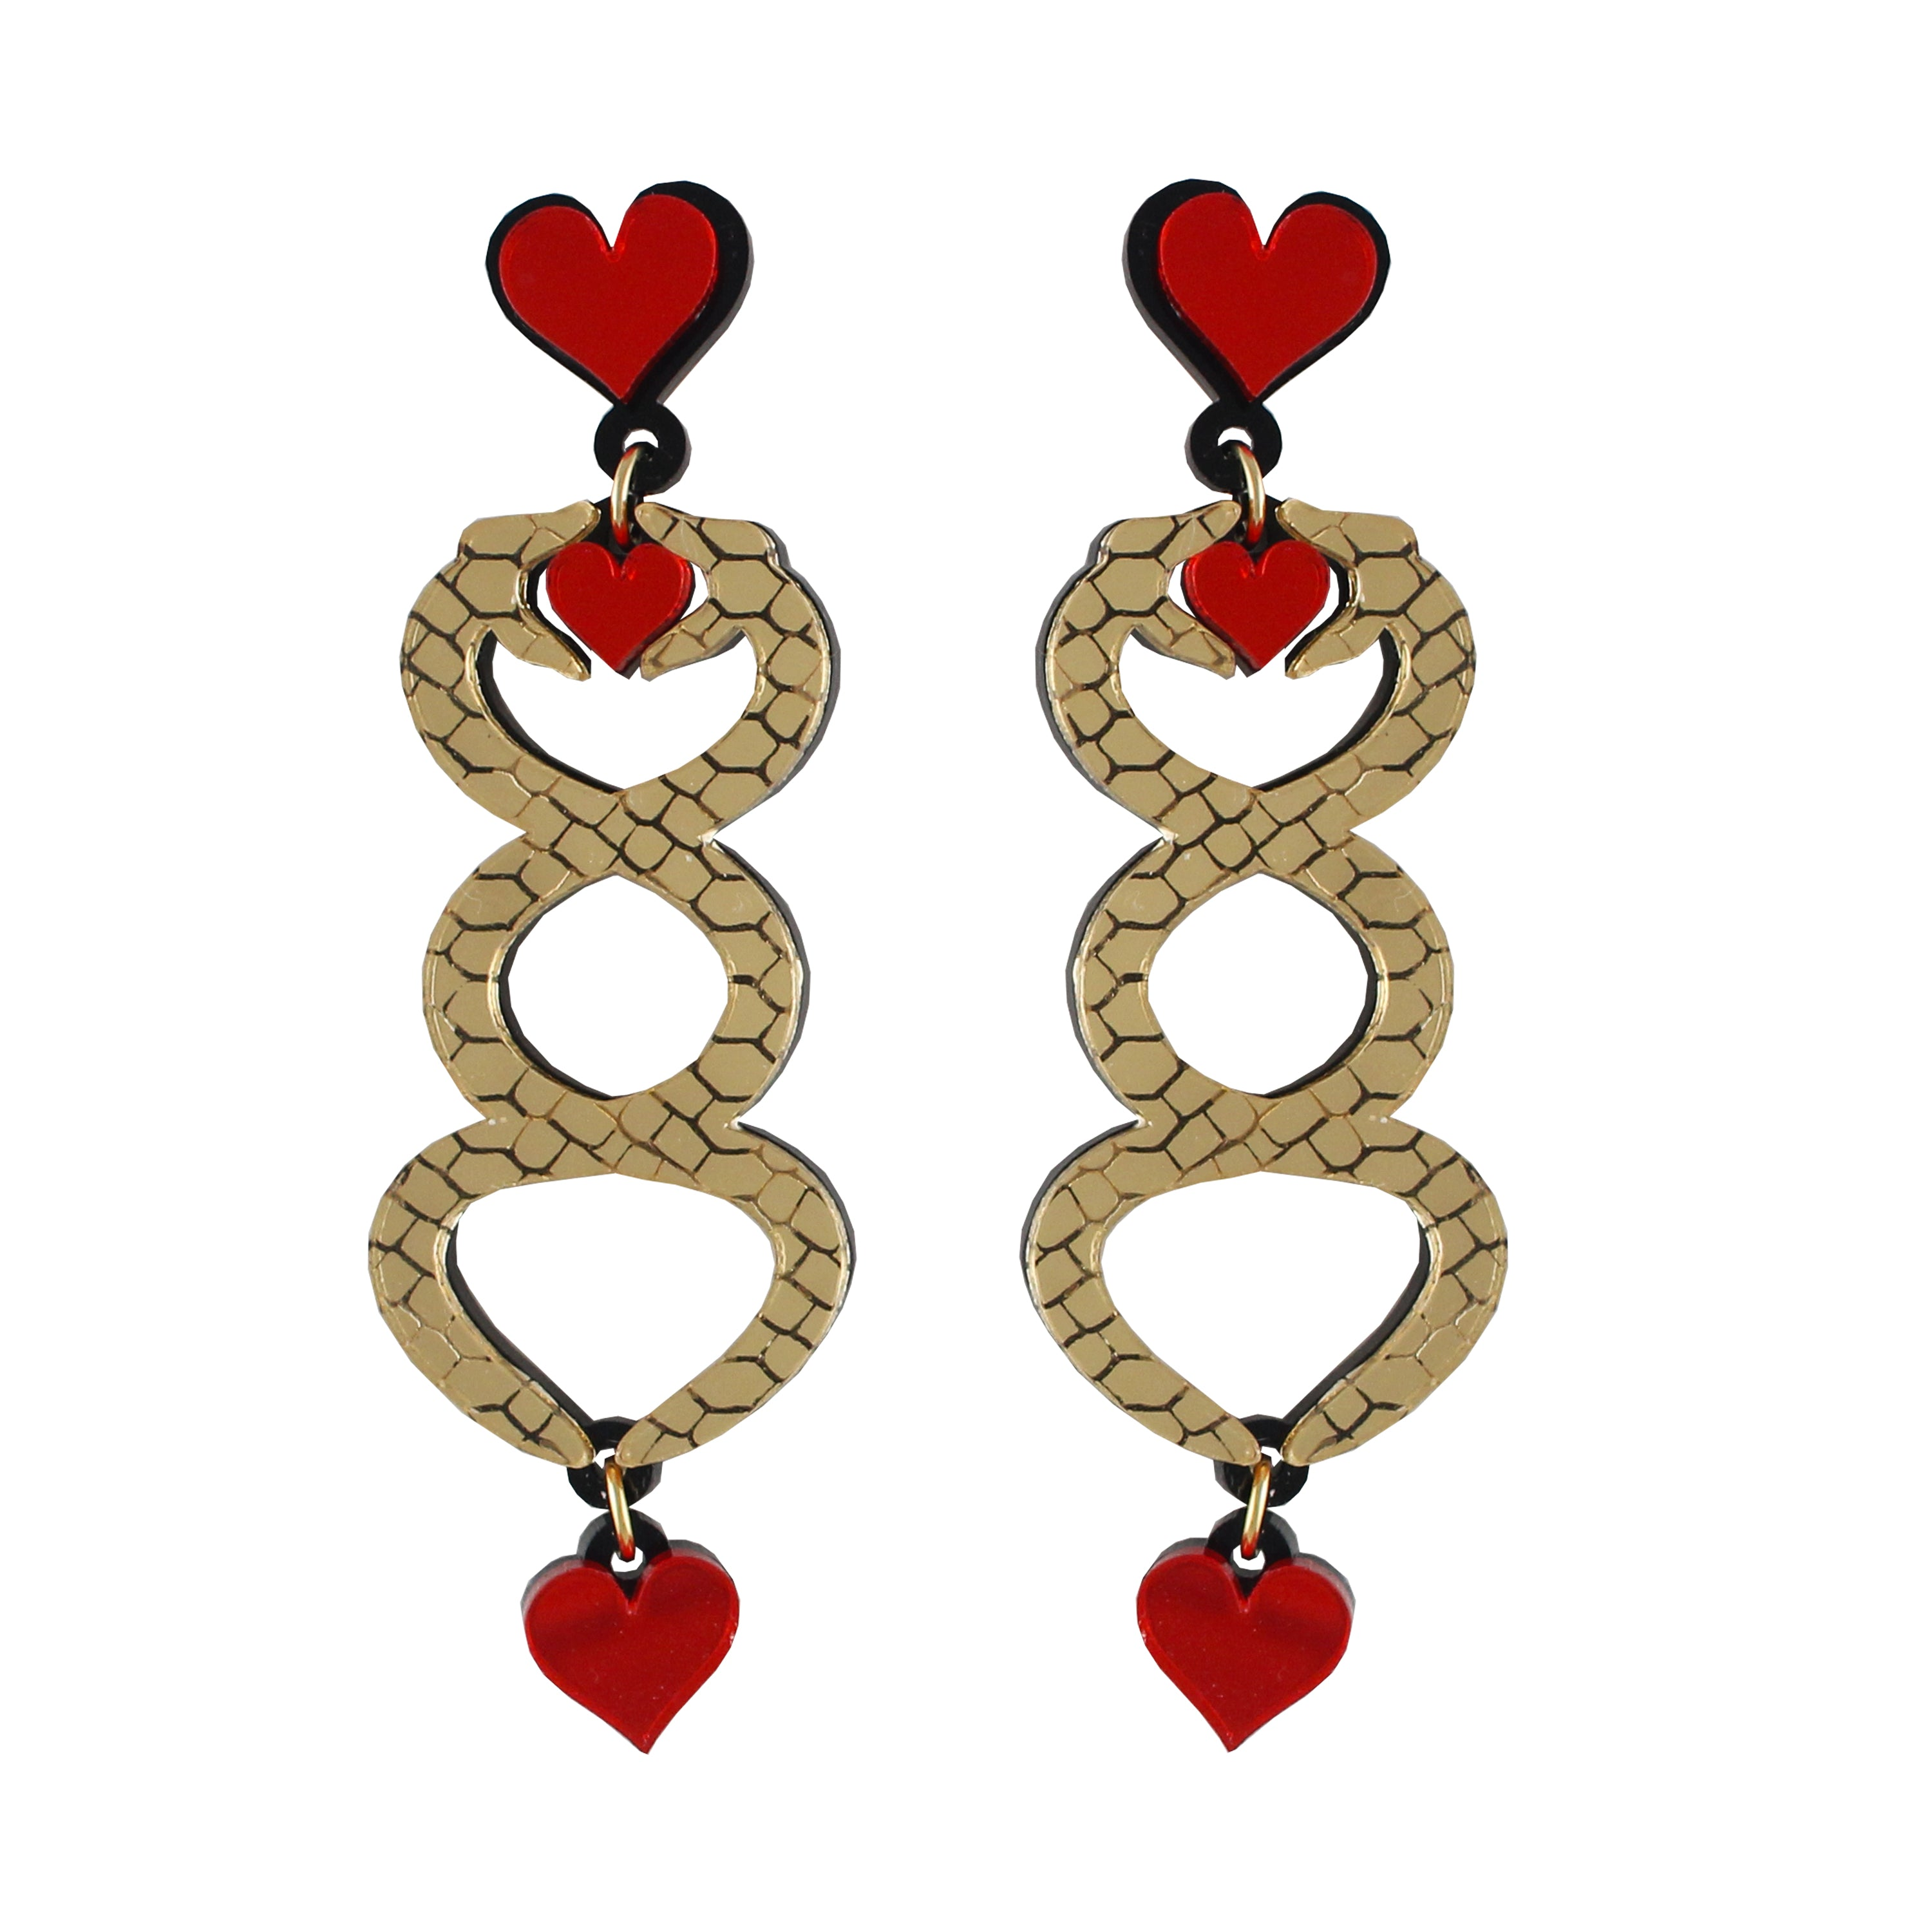 Entwined Snake and Heart Ear-rings